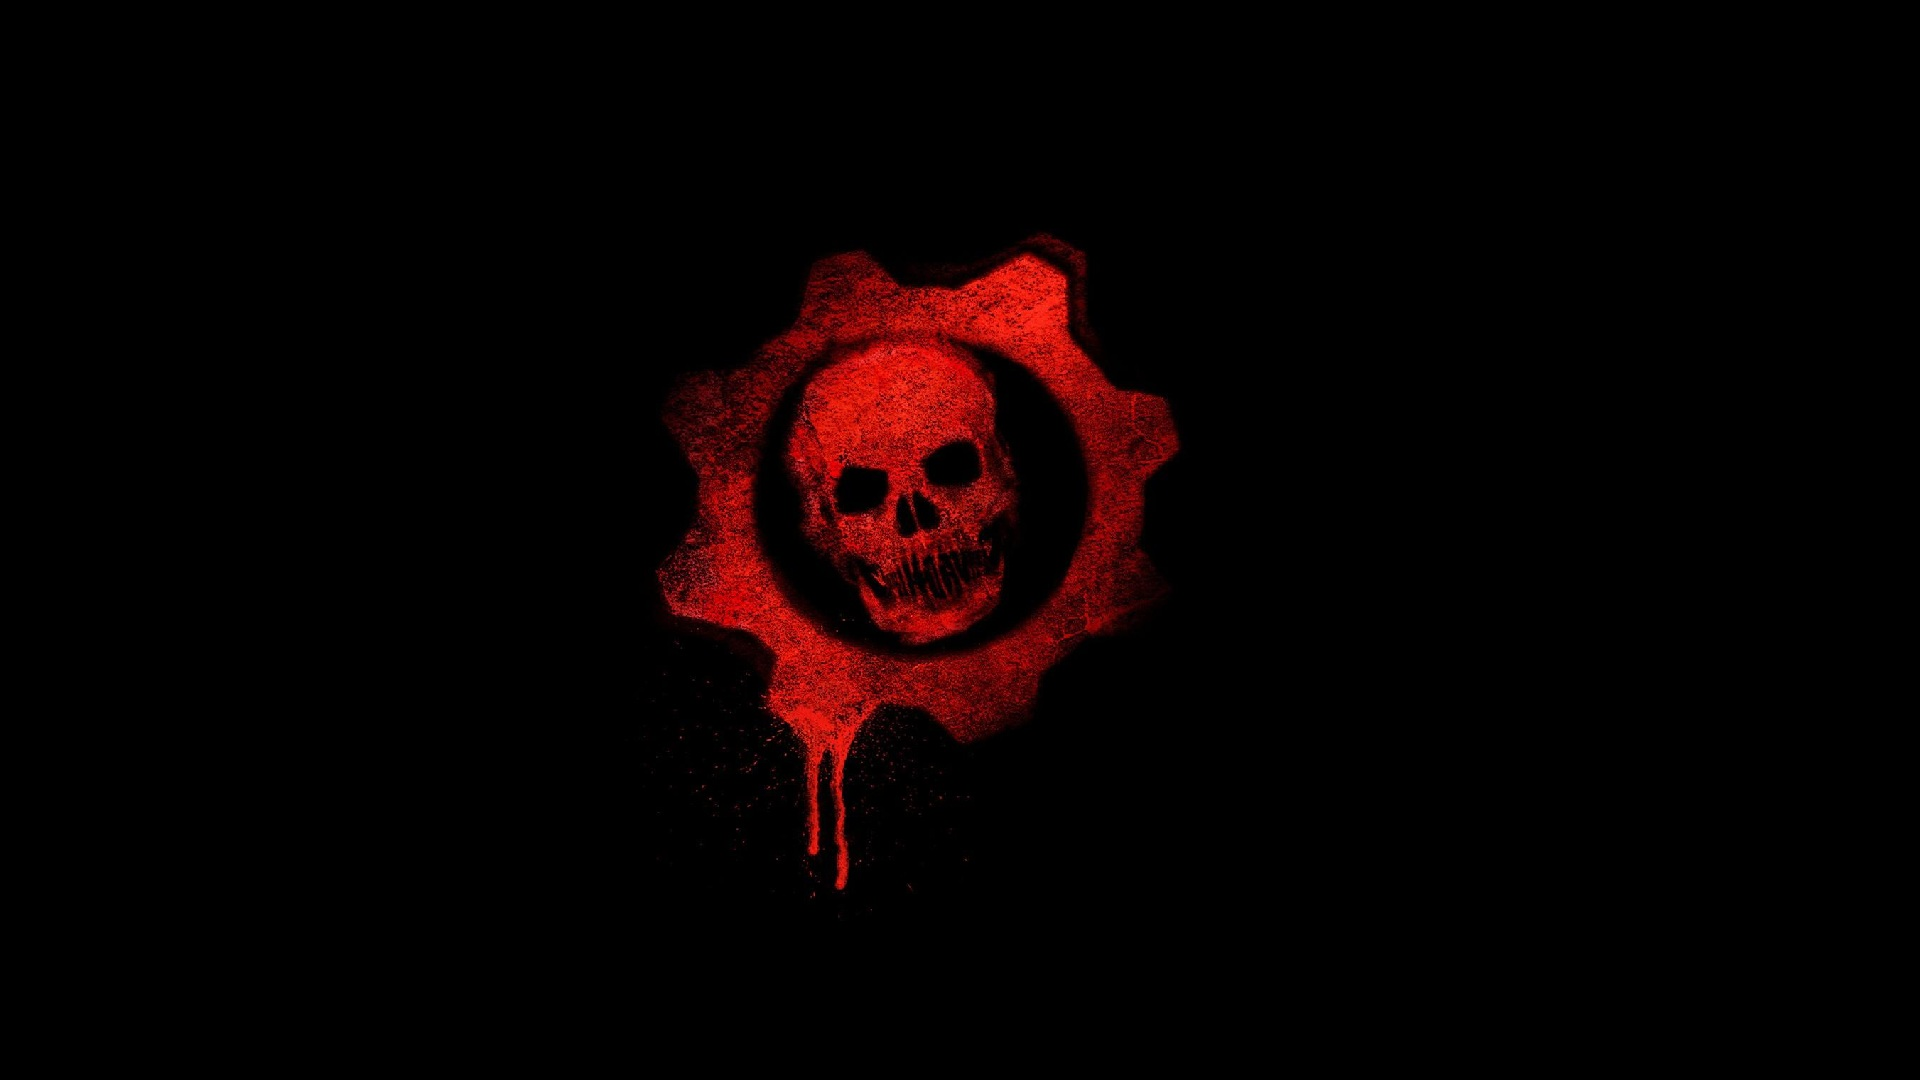 skulls_gears_of_war_desktop_1920x1080_hd-wallpaper-911281